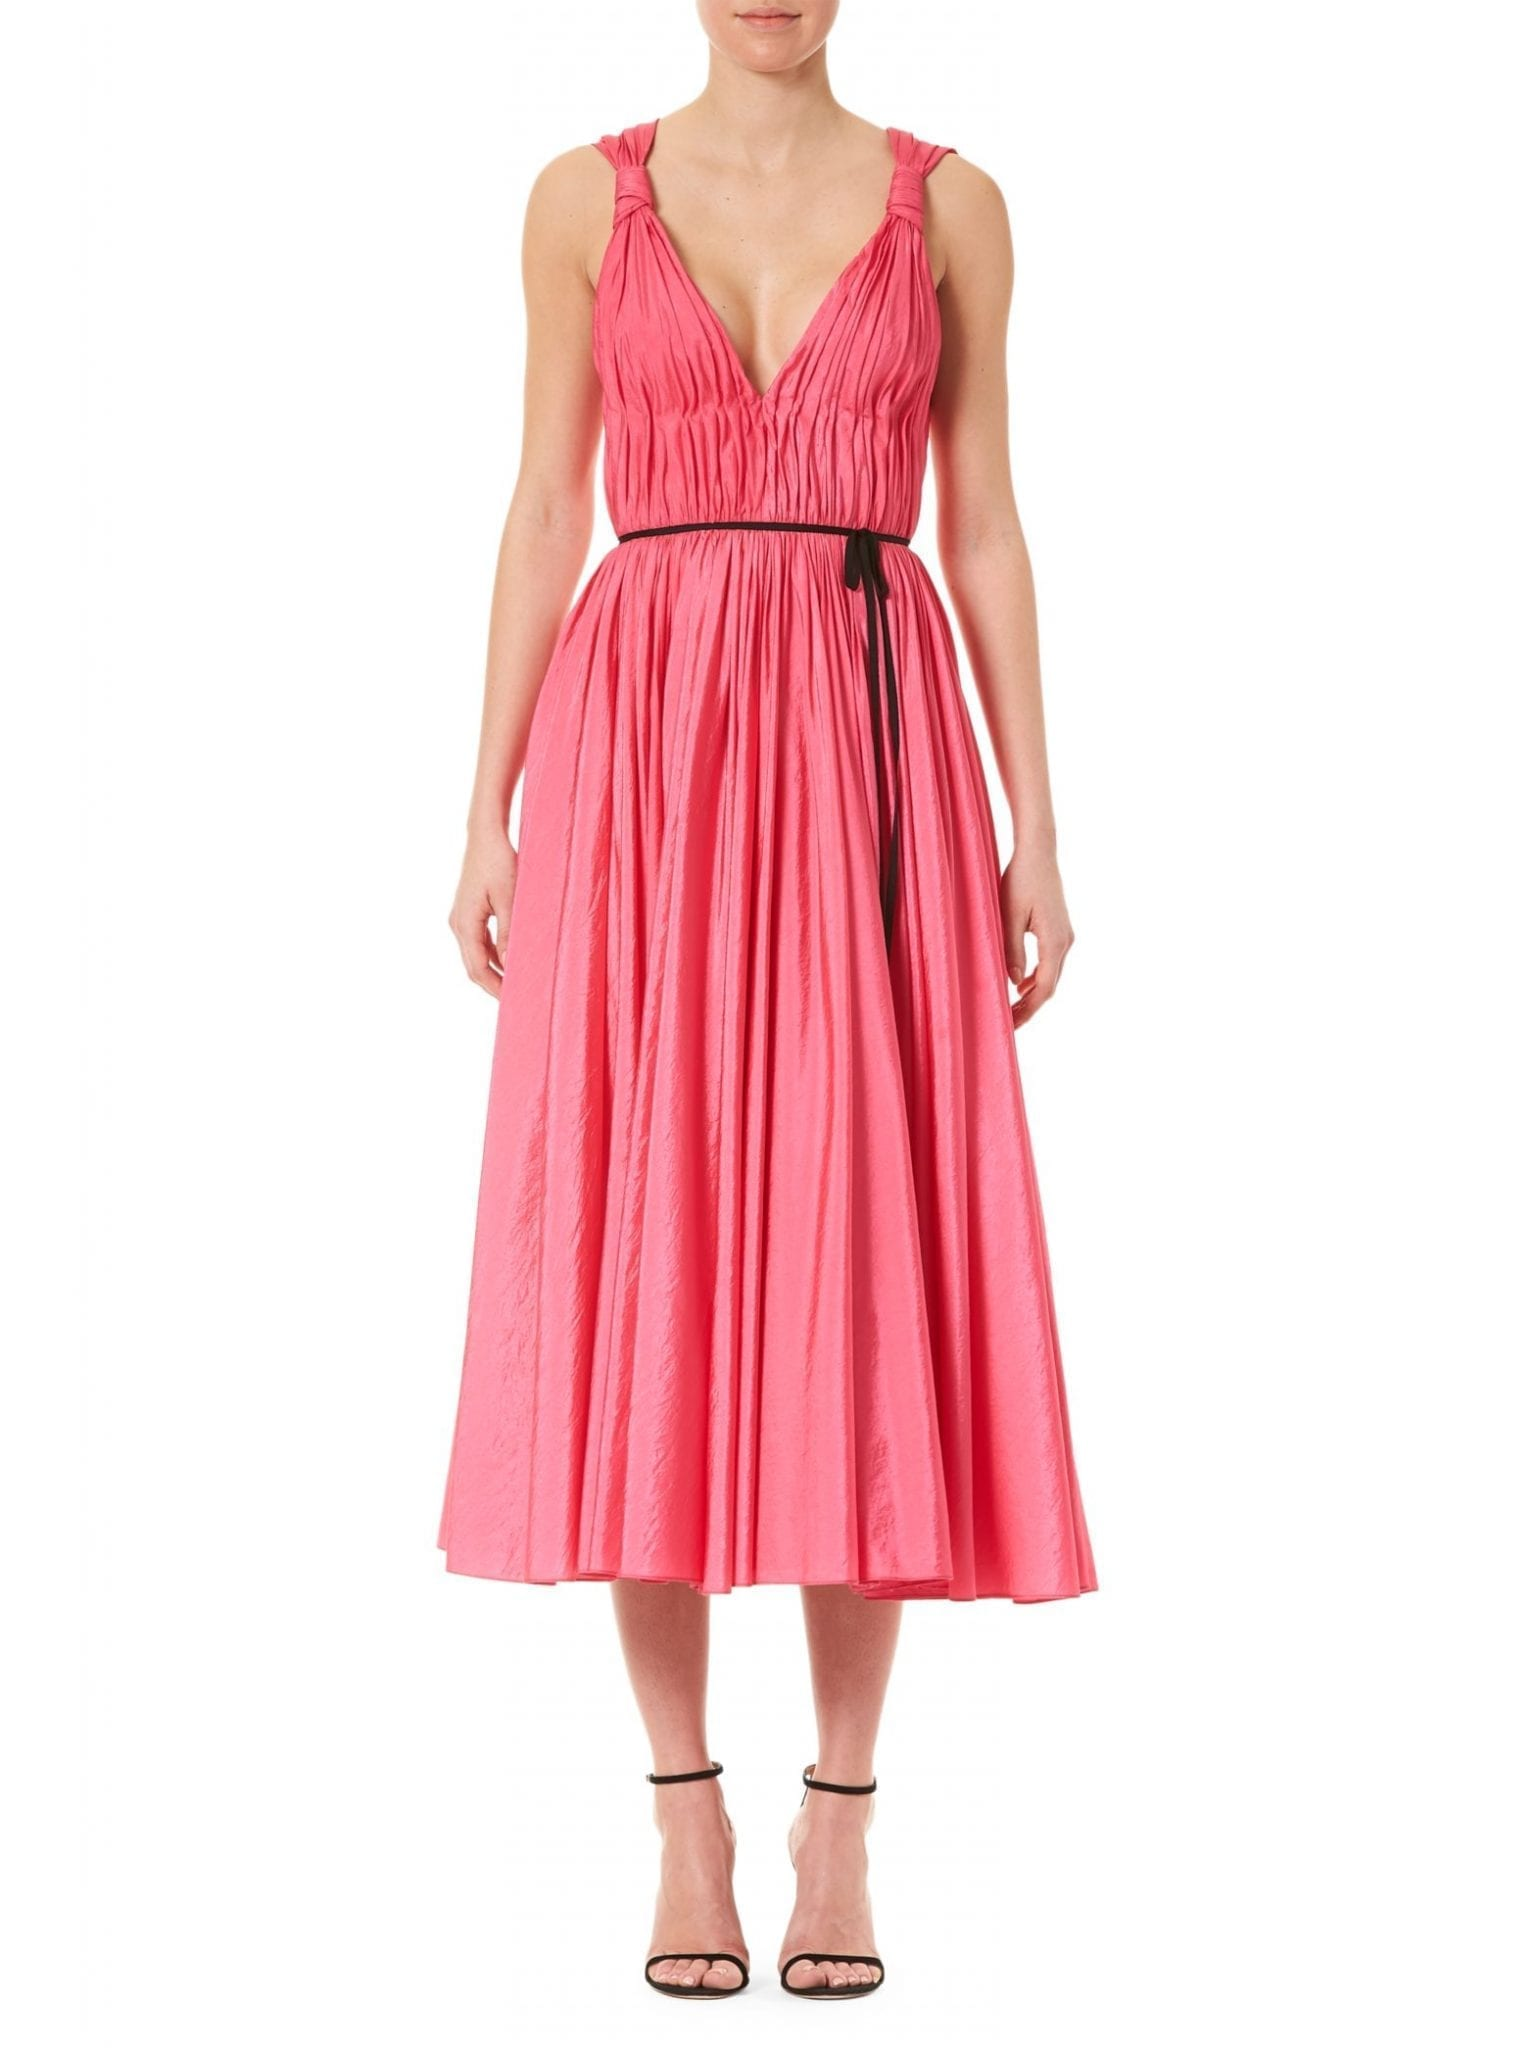 CAROLINA HERRERA Sleeveless Taffeta V-Neck Bow Dress